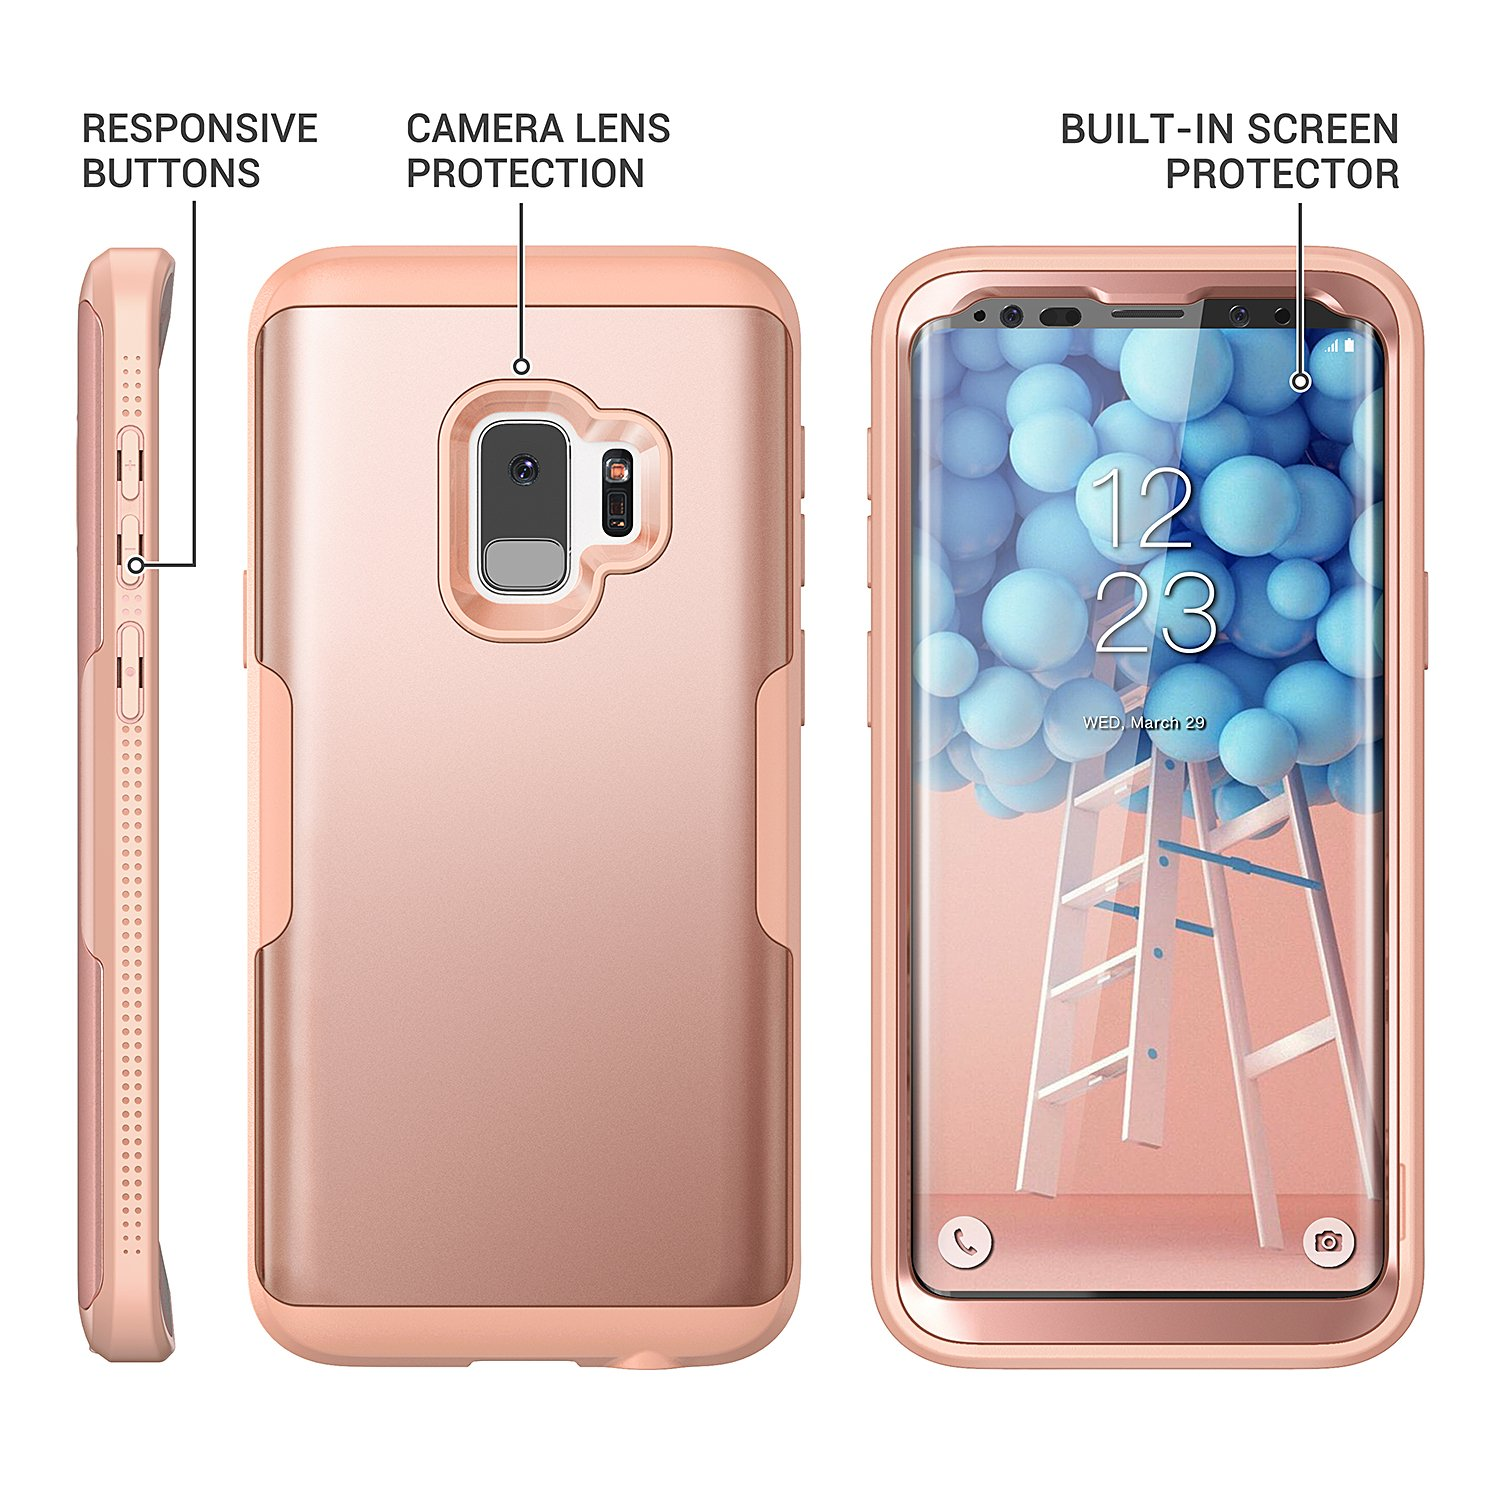 Galaxy S9 Case, YOUMAKER Rose Gold with Built-in Screen Protector Heavy Duty Protection Shockproof Slim Fit Full Body Case Cover for Samsung Galaxy S9 5.8 inch (2018) - Rose Gold/Pink by YOUMAKER (Image #6)